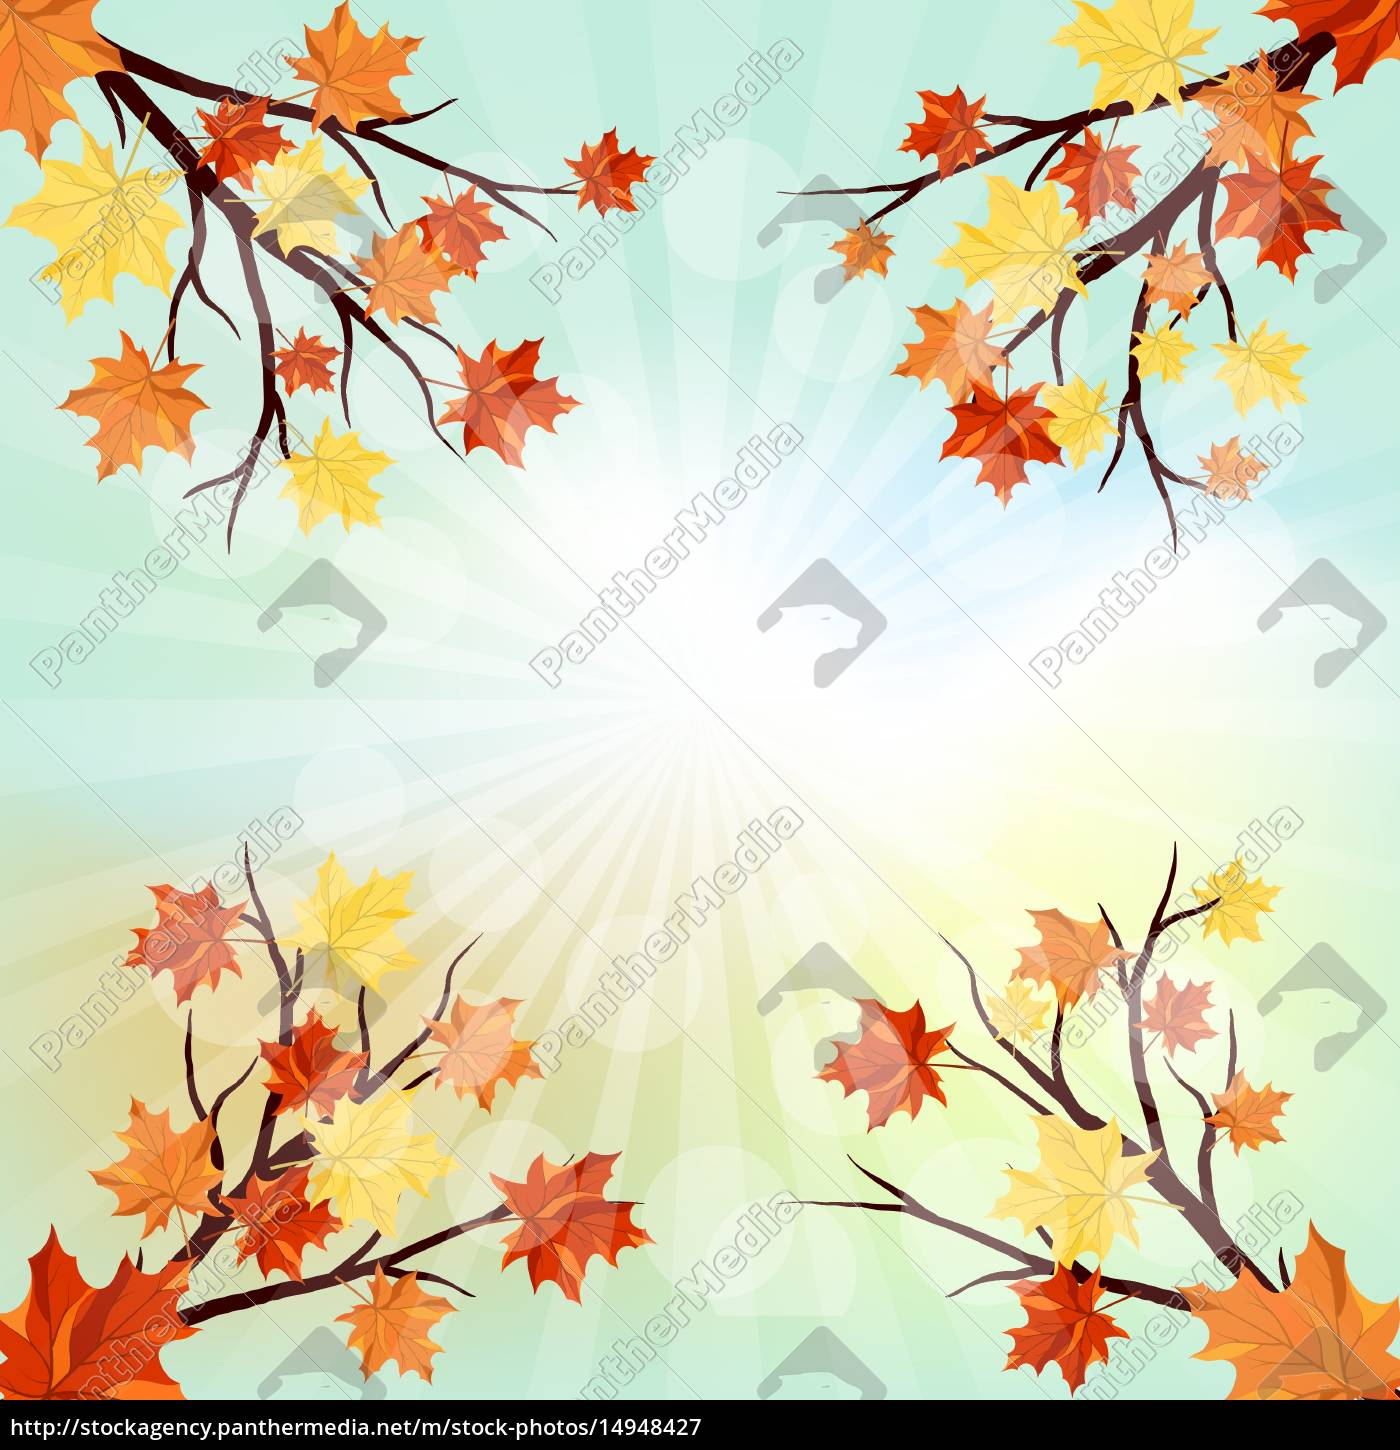 autumn, , design - 14948427